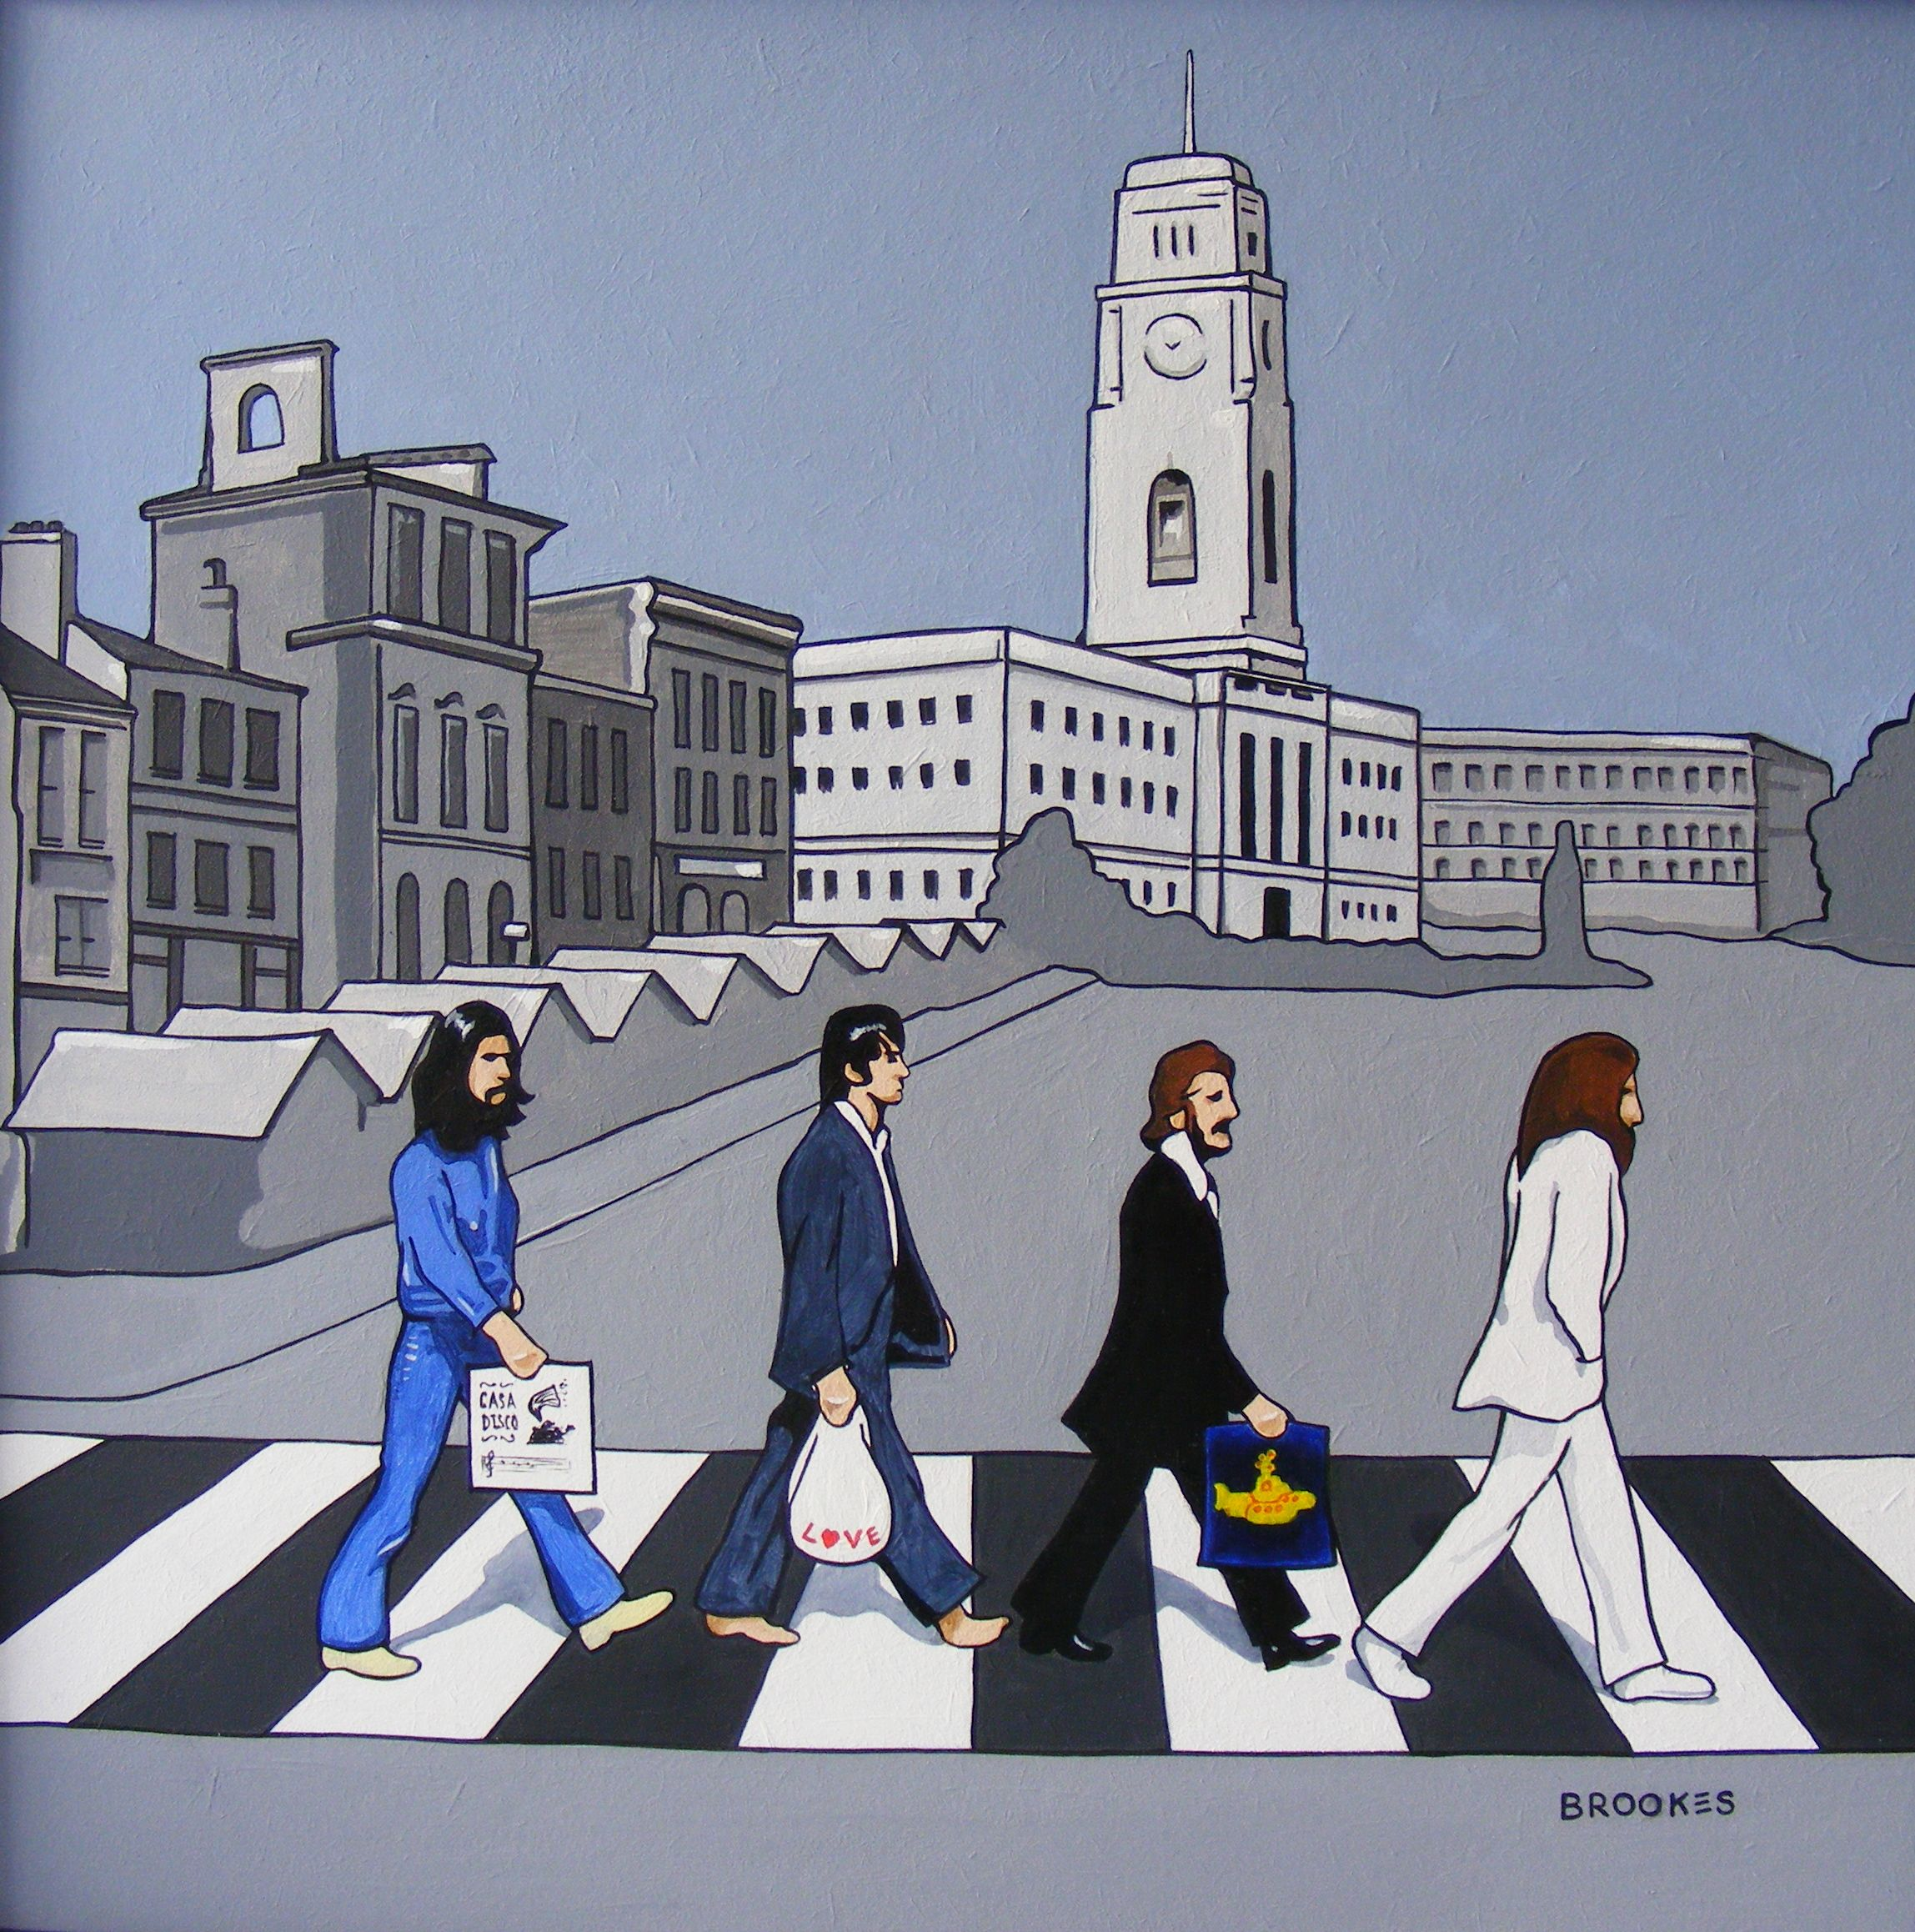 """when the beatles came to barnsley"""" image © terry brookes 